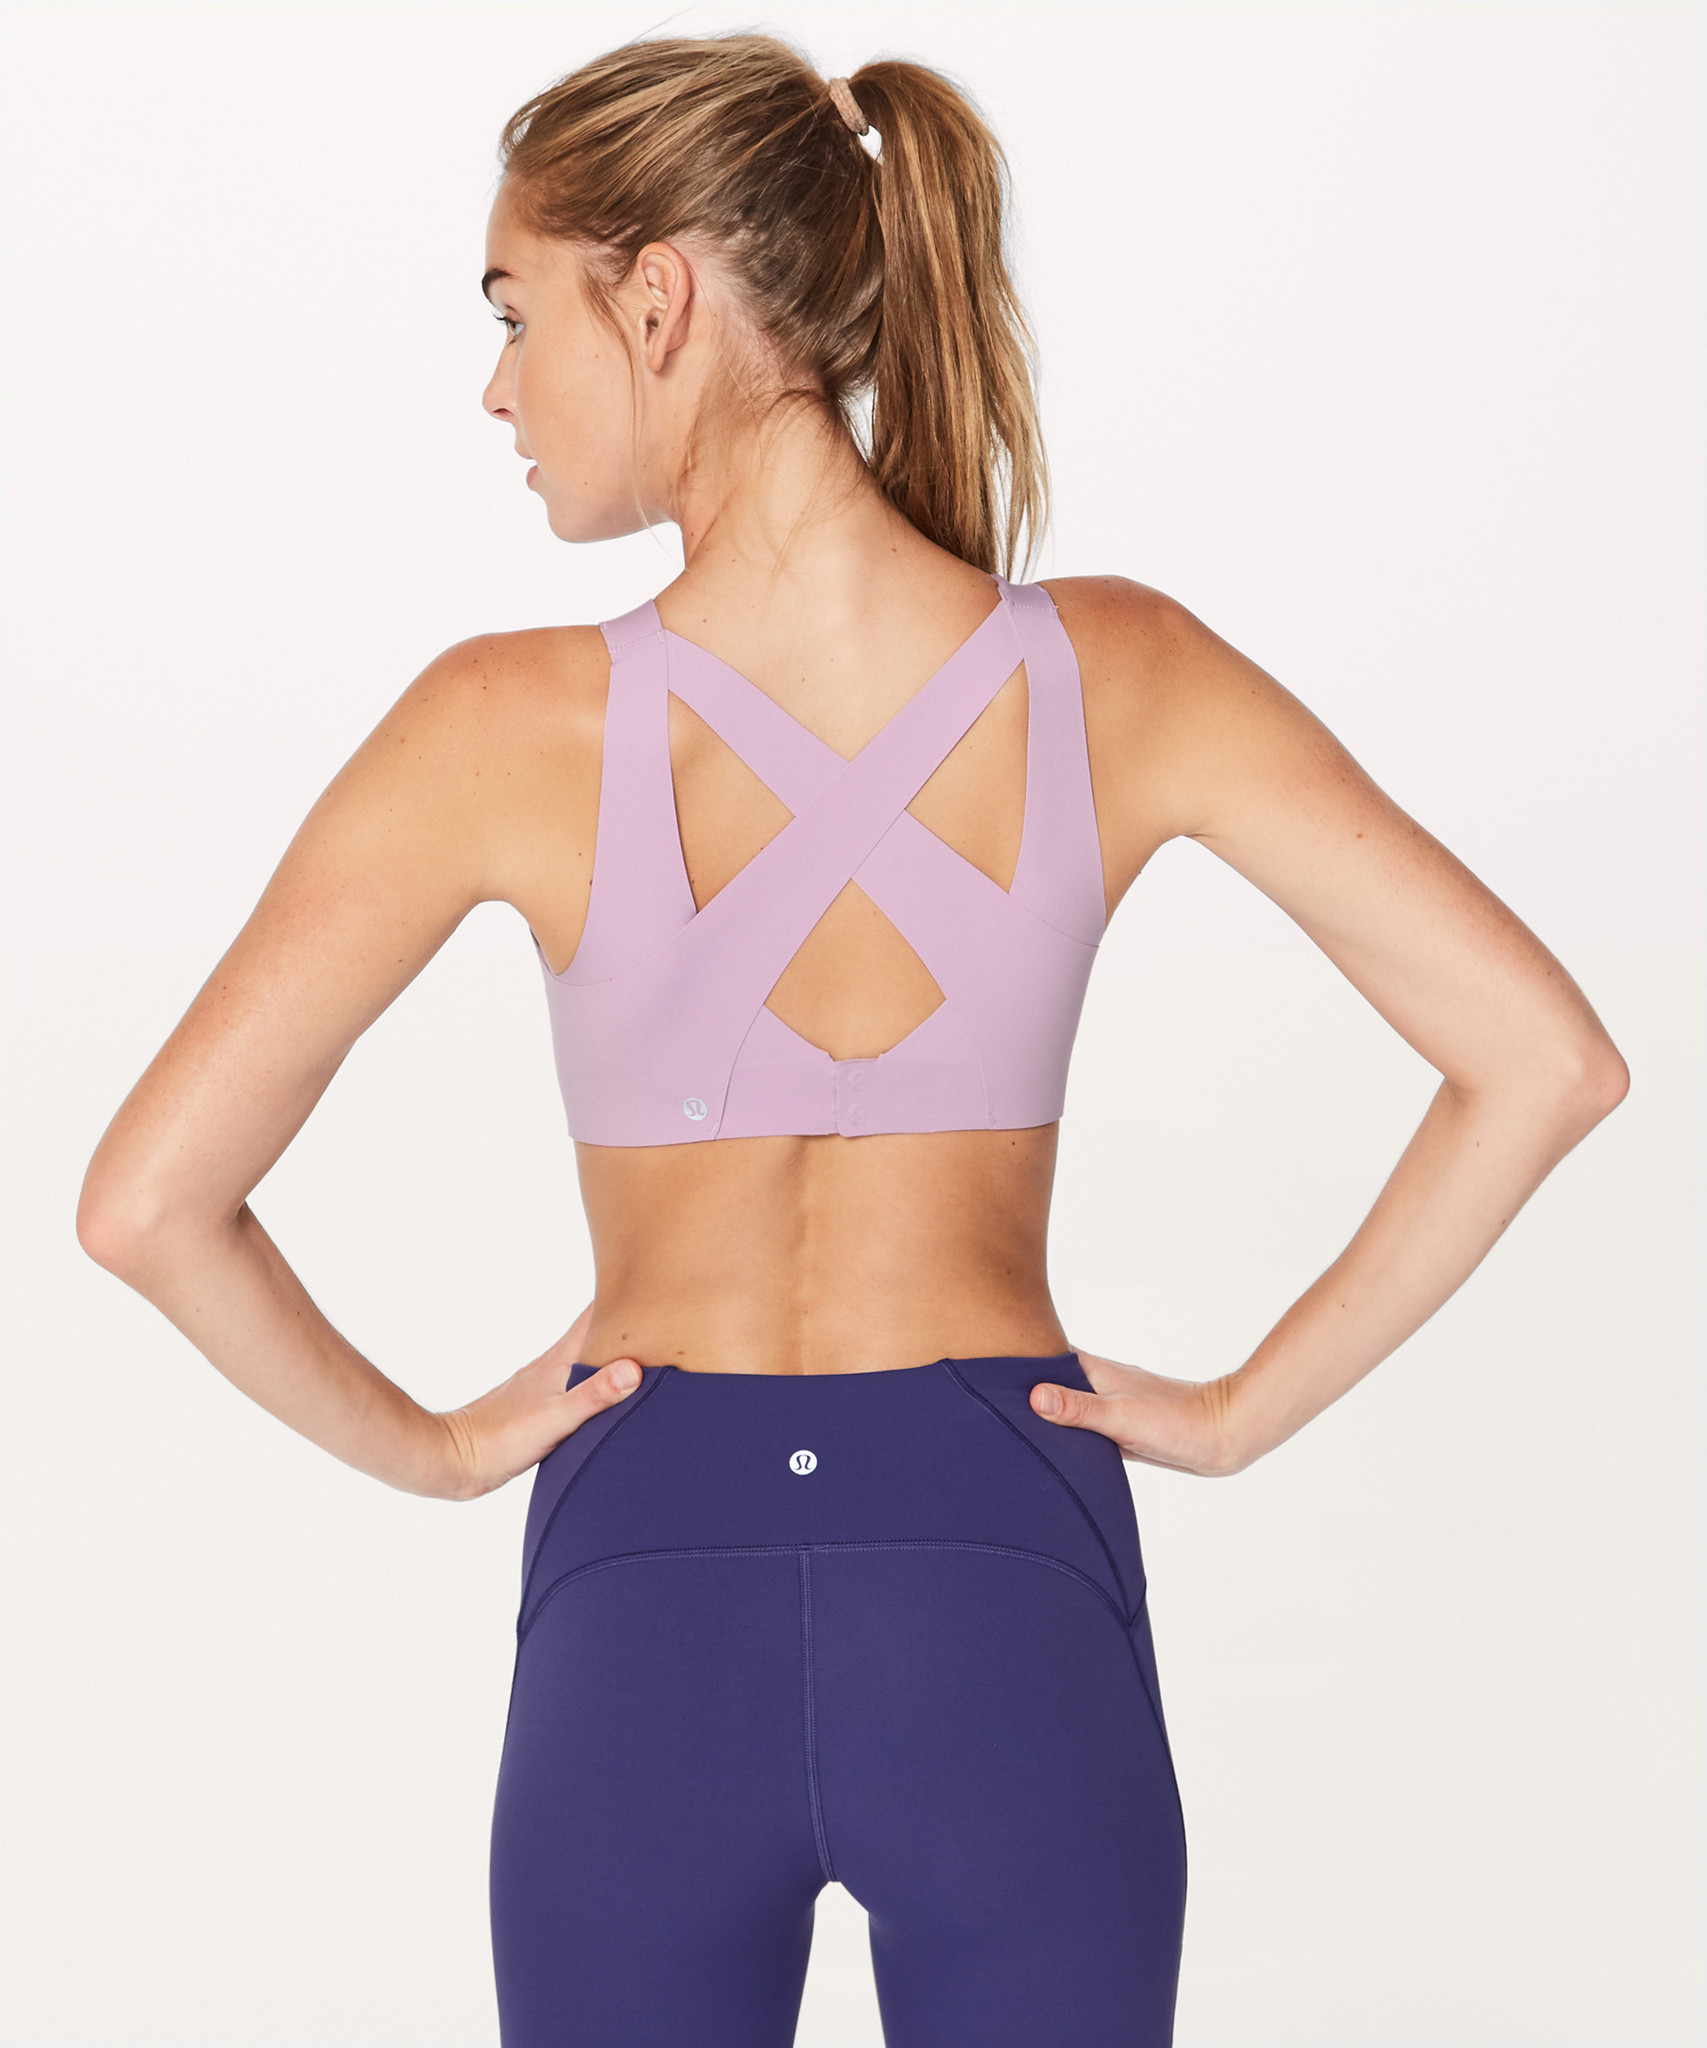 Fit-To Size: Lululemon wasn't at the Activewear trend show but their Enlite Bra is an example of the trend toward more specific sizing: ($98, shop.lululemon.com)